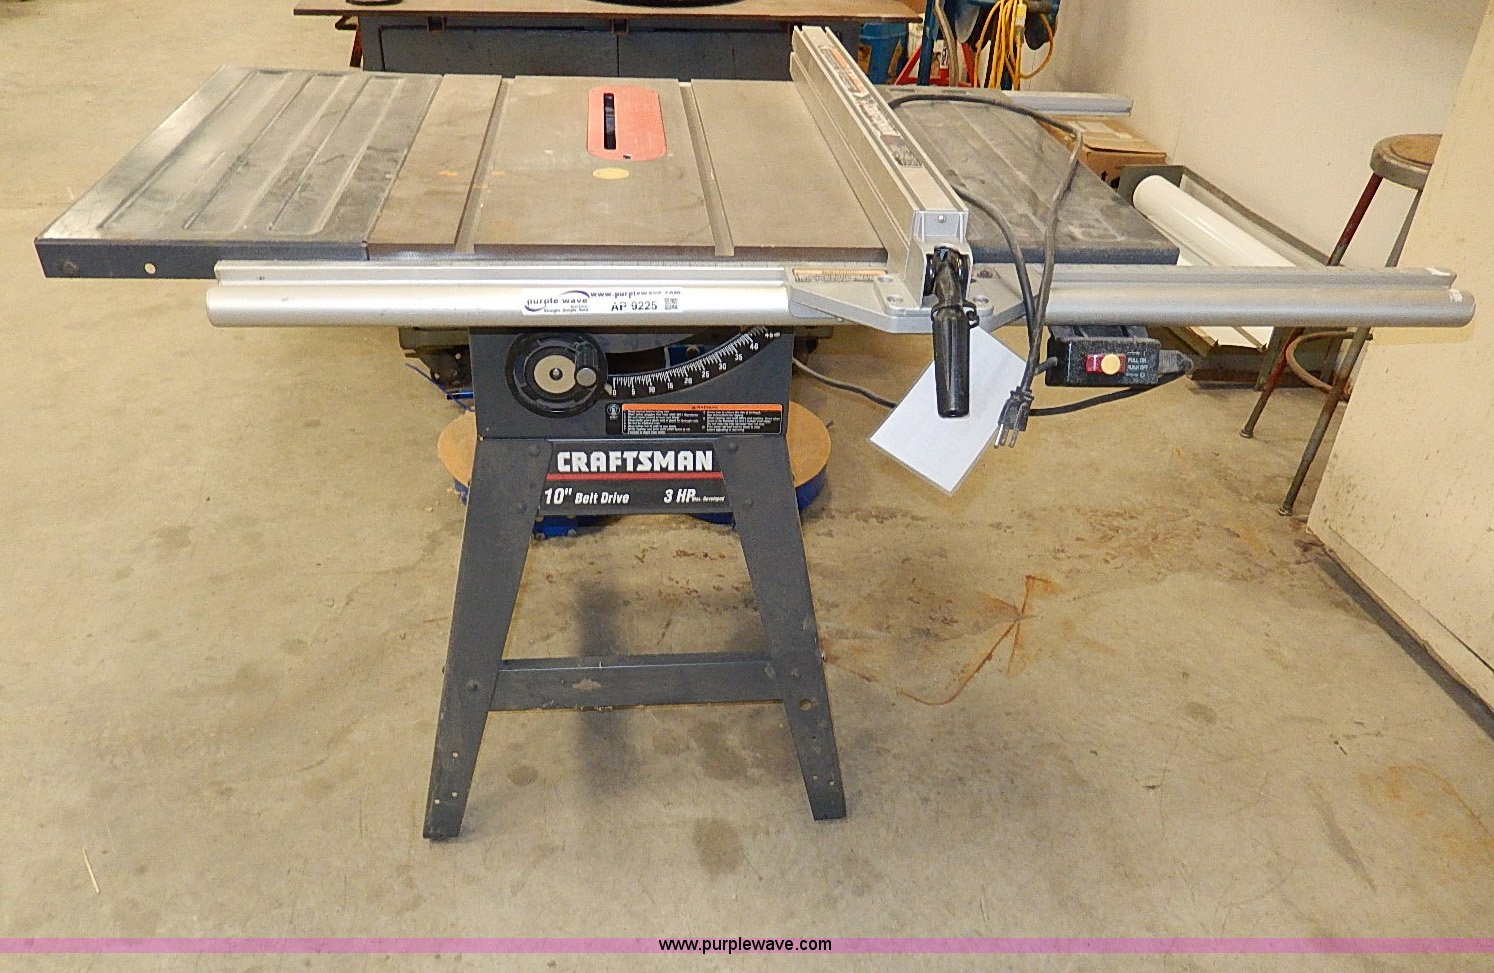 Craftsman 113299315 10 table saw item ap9225 sold ap9225 image for item ap9225 craftsman 113299315 10 table saw keyboard keysfo